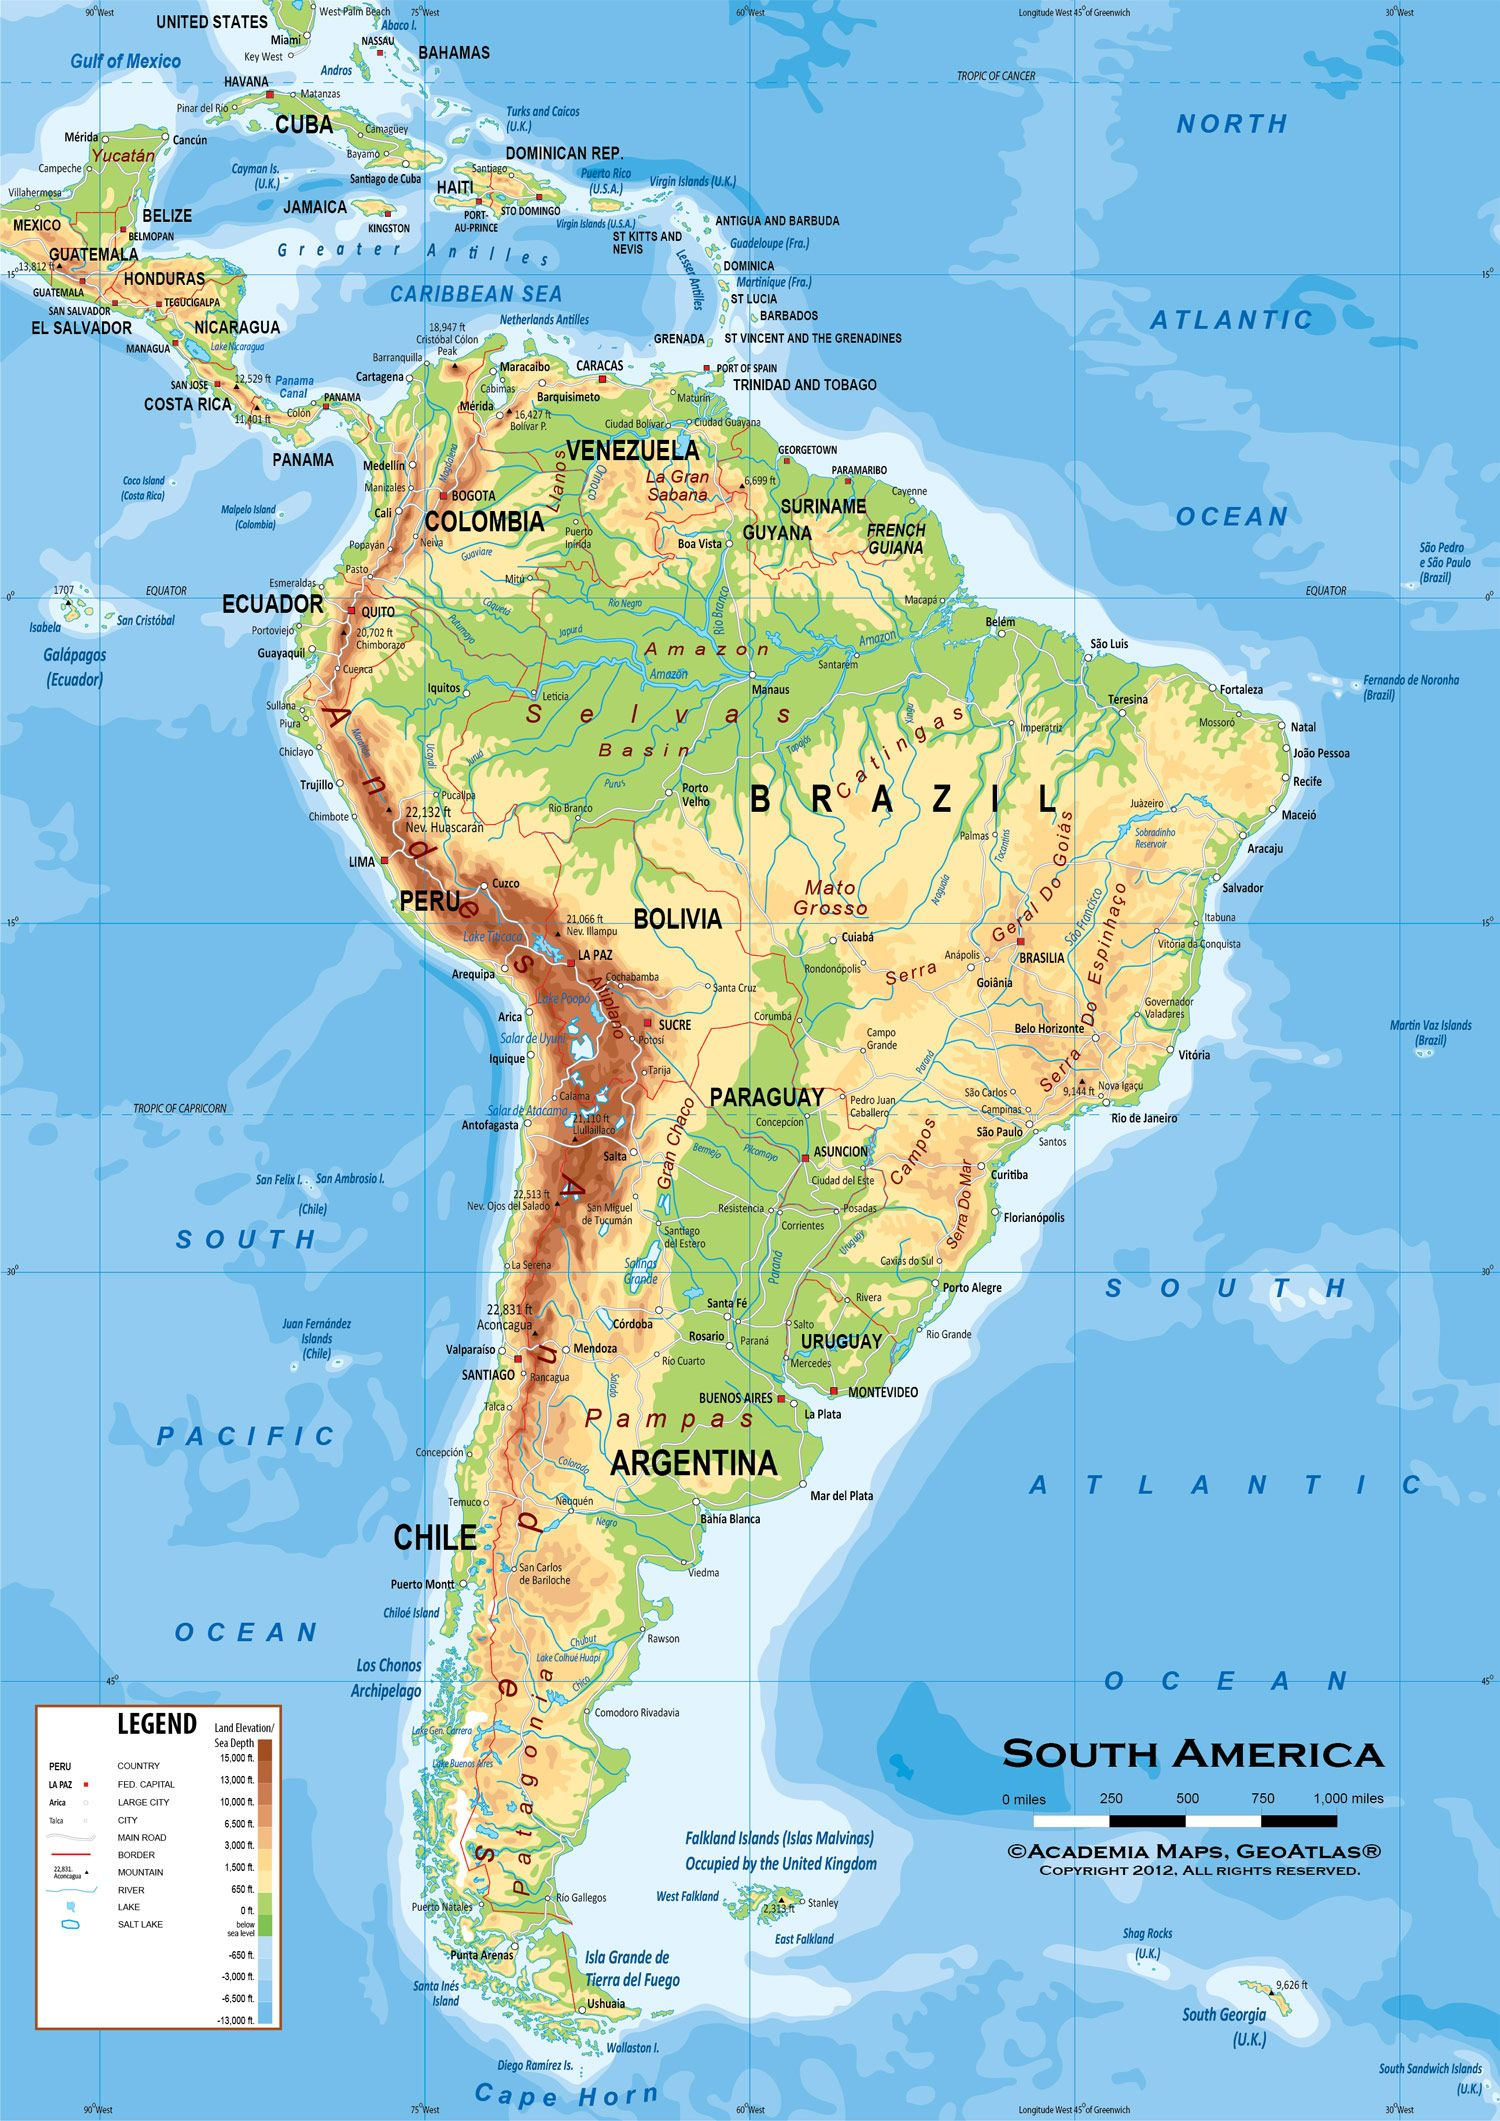 united states physical and political map Map Of Latin America South America Physical And Political